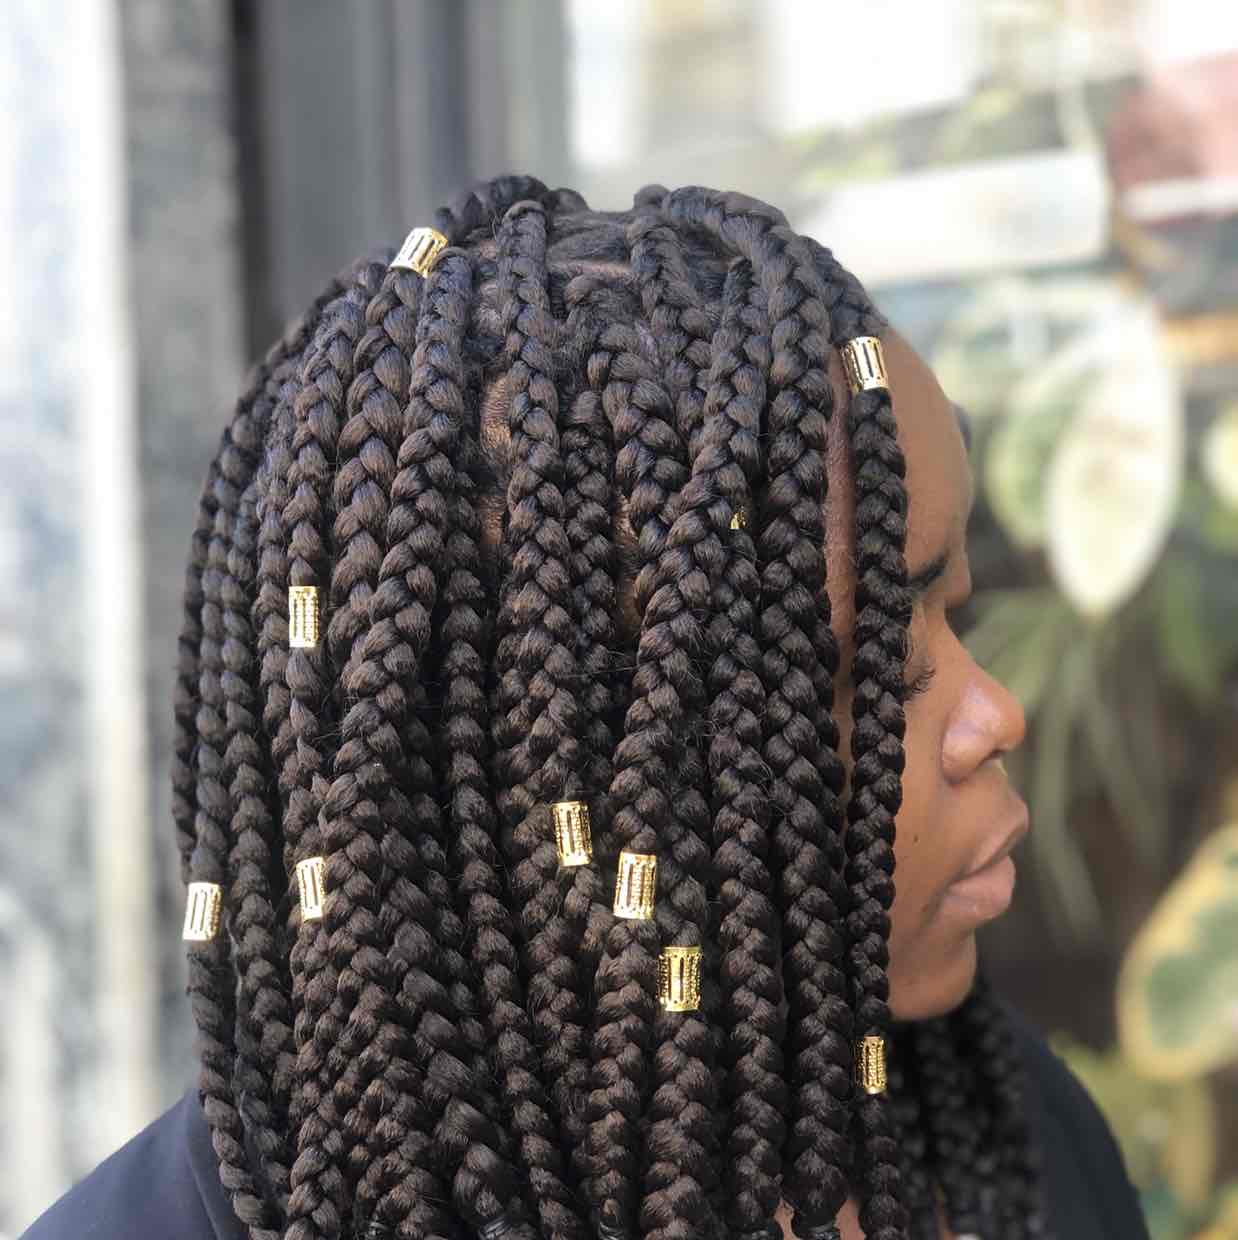 salon de coiffure afro tresse tresses box braids crochet braids vanilles tissages paris 75 77 78 91 92 93 94 95 IXZOJTJG